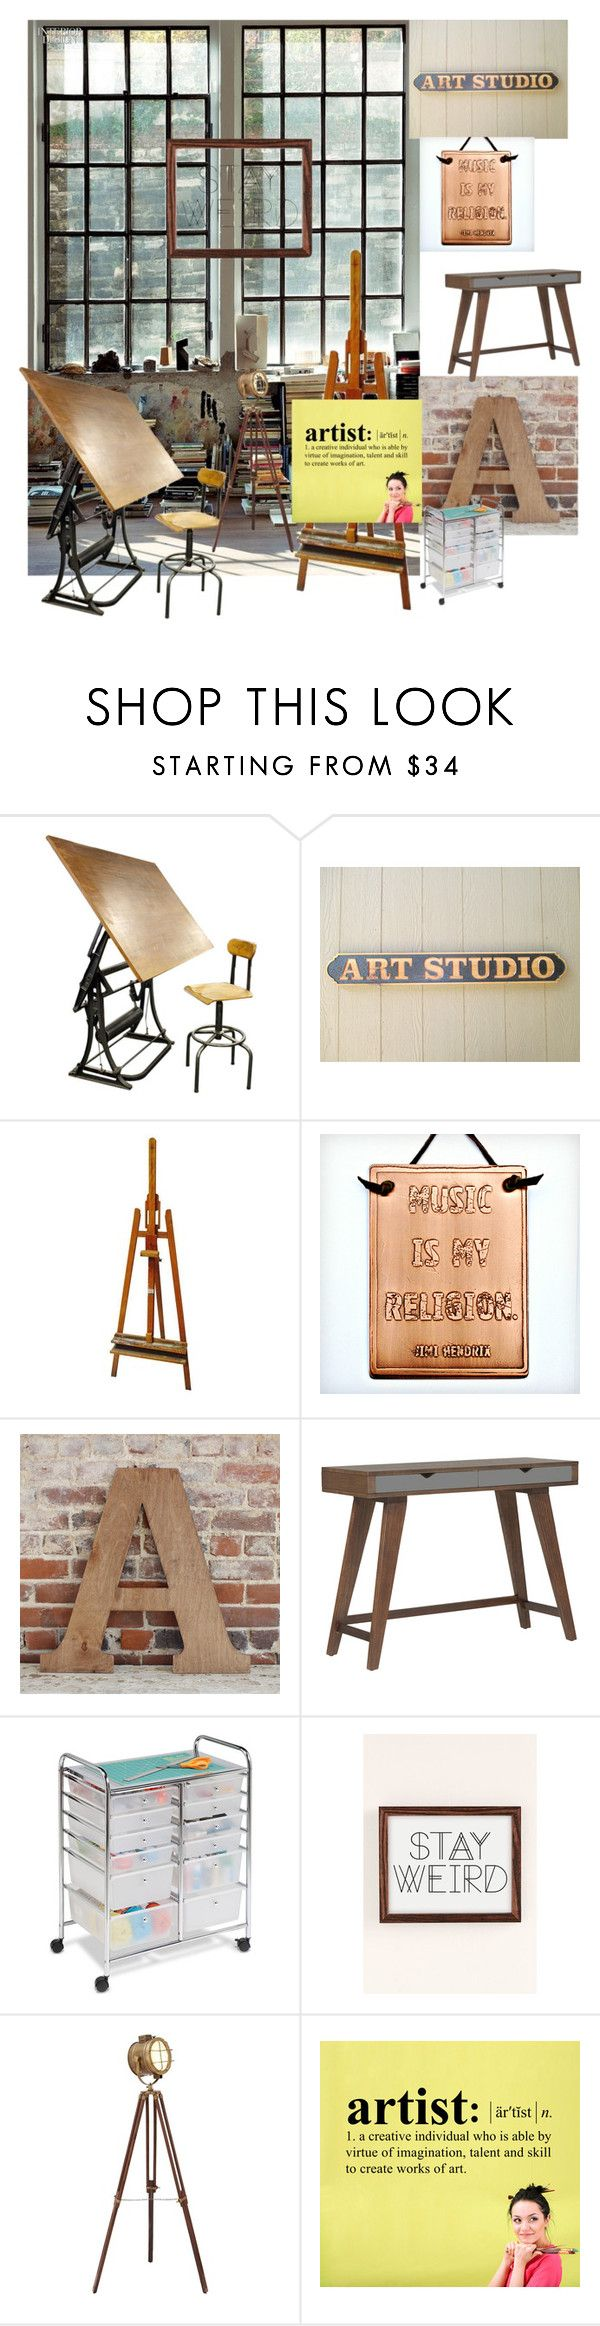 """Workspace"" by oneandonlylish ❤ liked on Polyvore featuring interior, interiors, interior design, home, home decor, interior decorating, EASEL, Dot & Bo, Honey-Can-Do and Urban Outfitters"